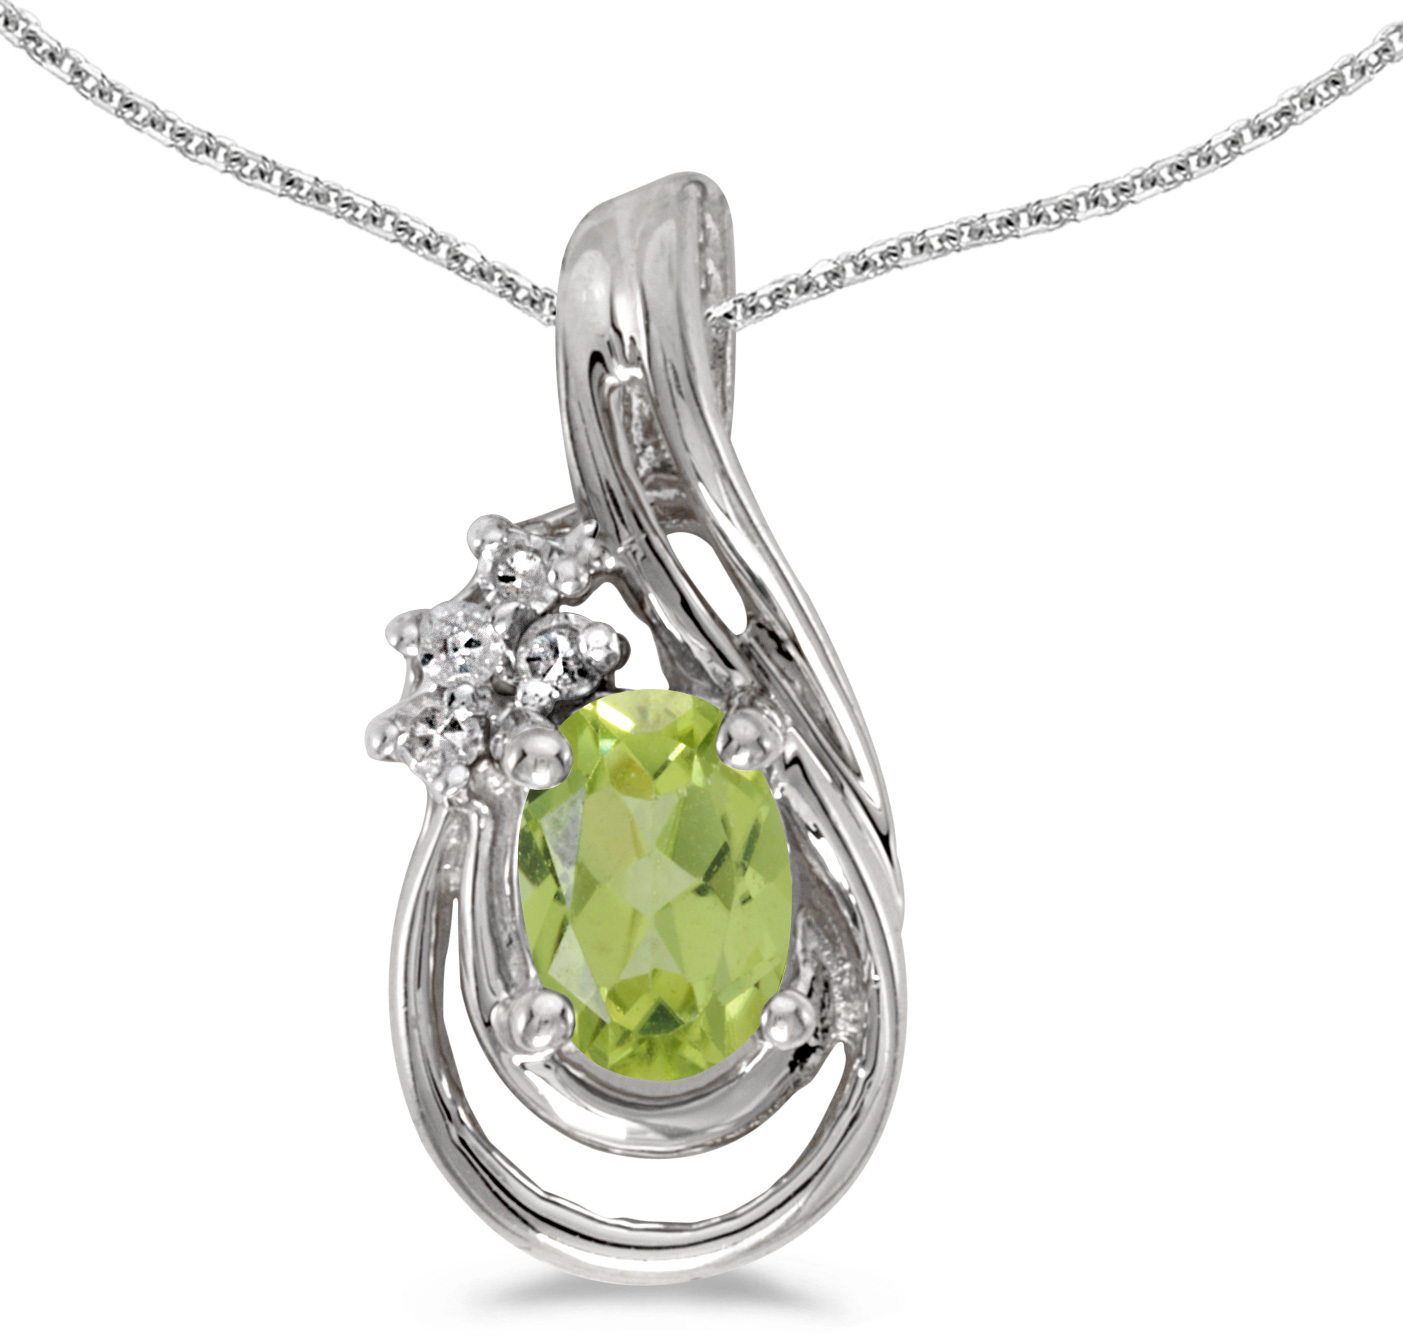 14k White Gold Oval Peridot And Diamond Teardrop Pendant (Chain NOT included)